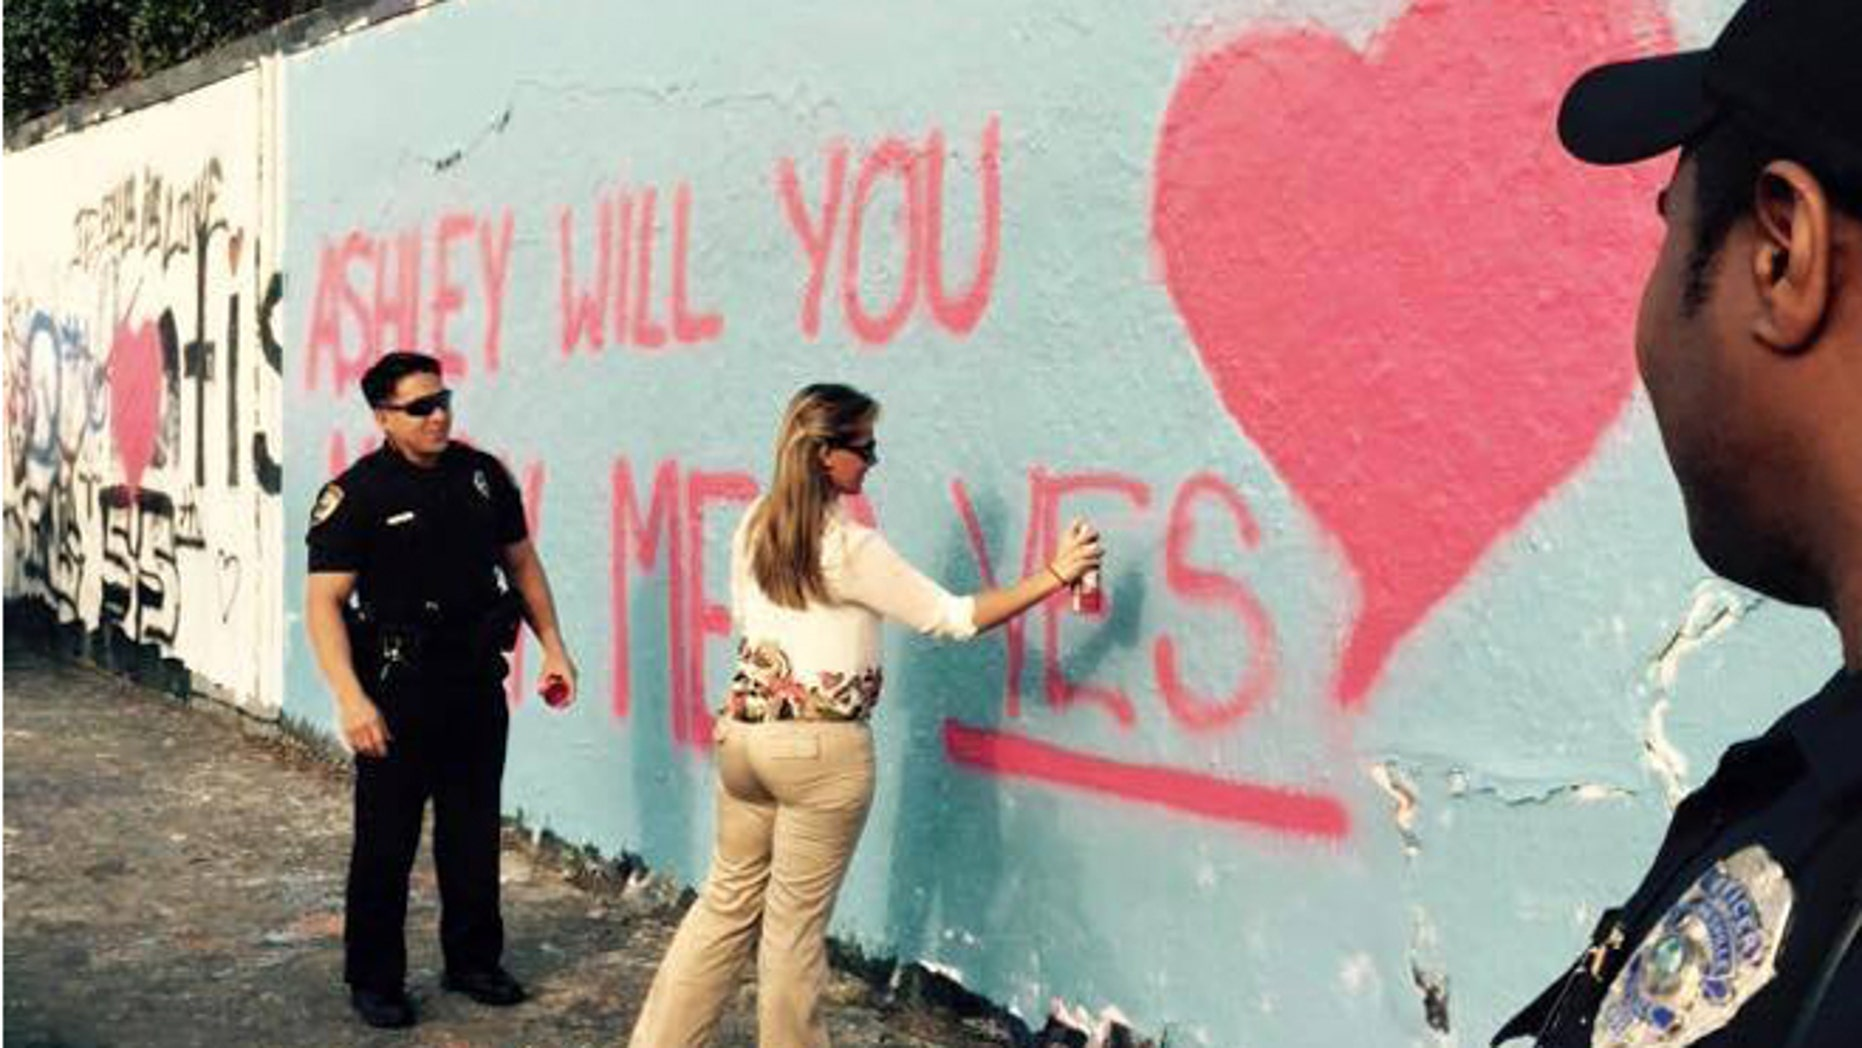 Officer Christian Hickey proposes to girlfriend Ashley Alderman at Gainesville, Fla., 34th Street graffiti wall. (Gainesville Police Department)